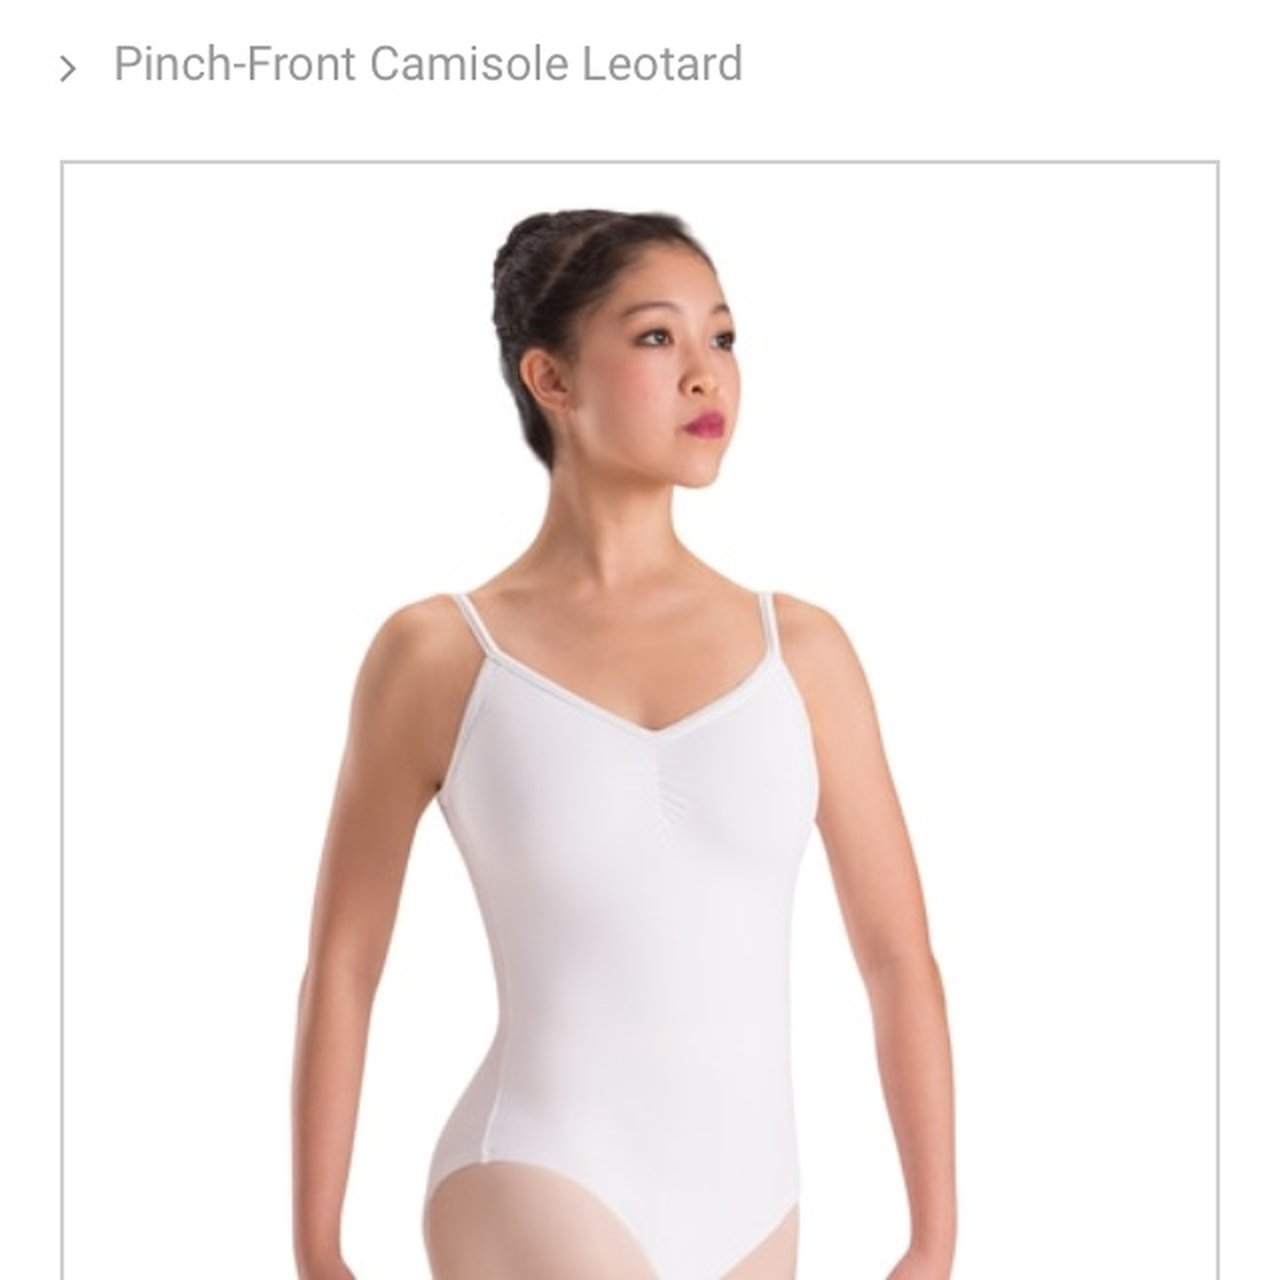 153eb3a27 Motionwear dance leotard. Worn once. Lined and has pinched - Depop